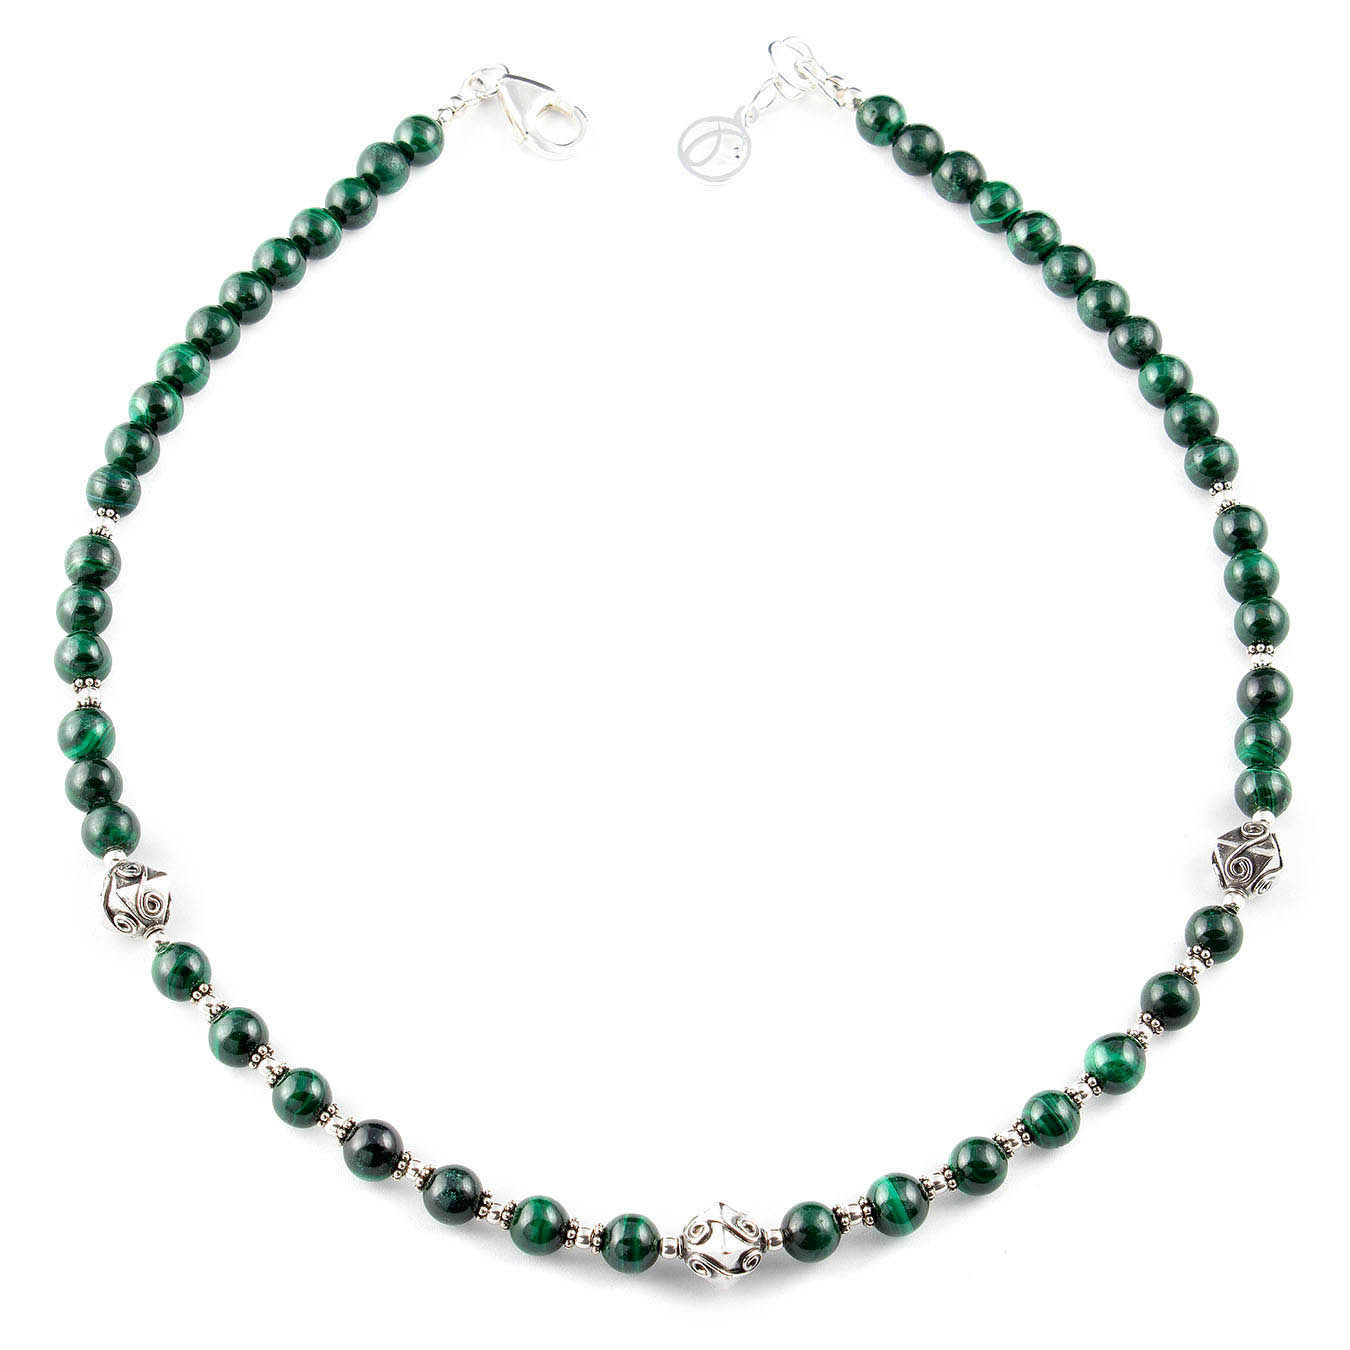 Gemstone necklace se t made with malachite and bali bicone silver bead